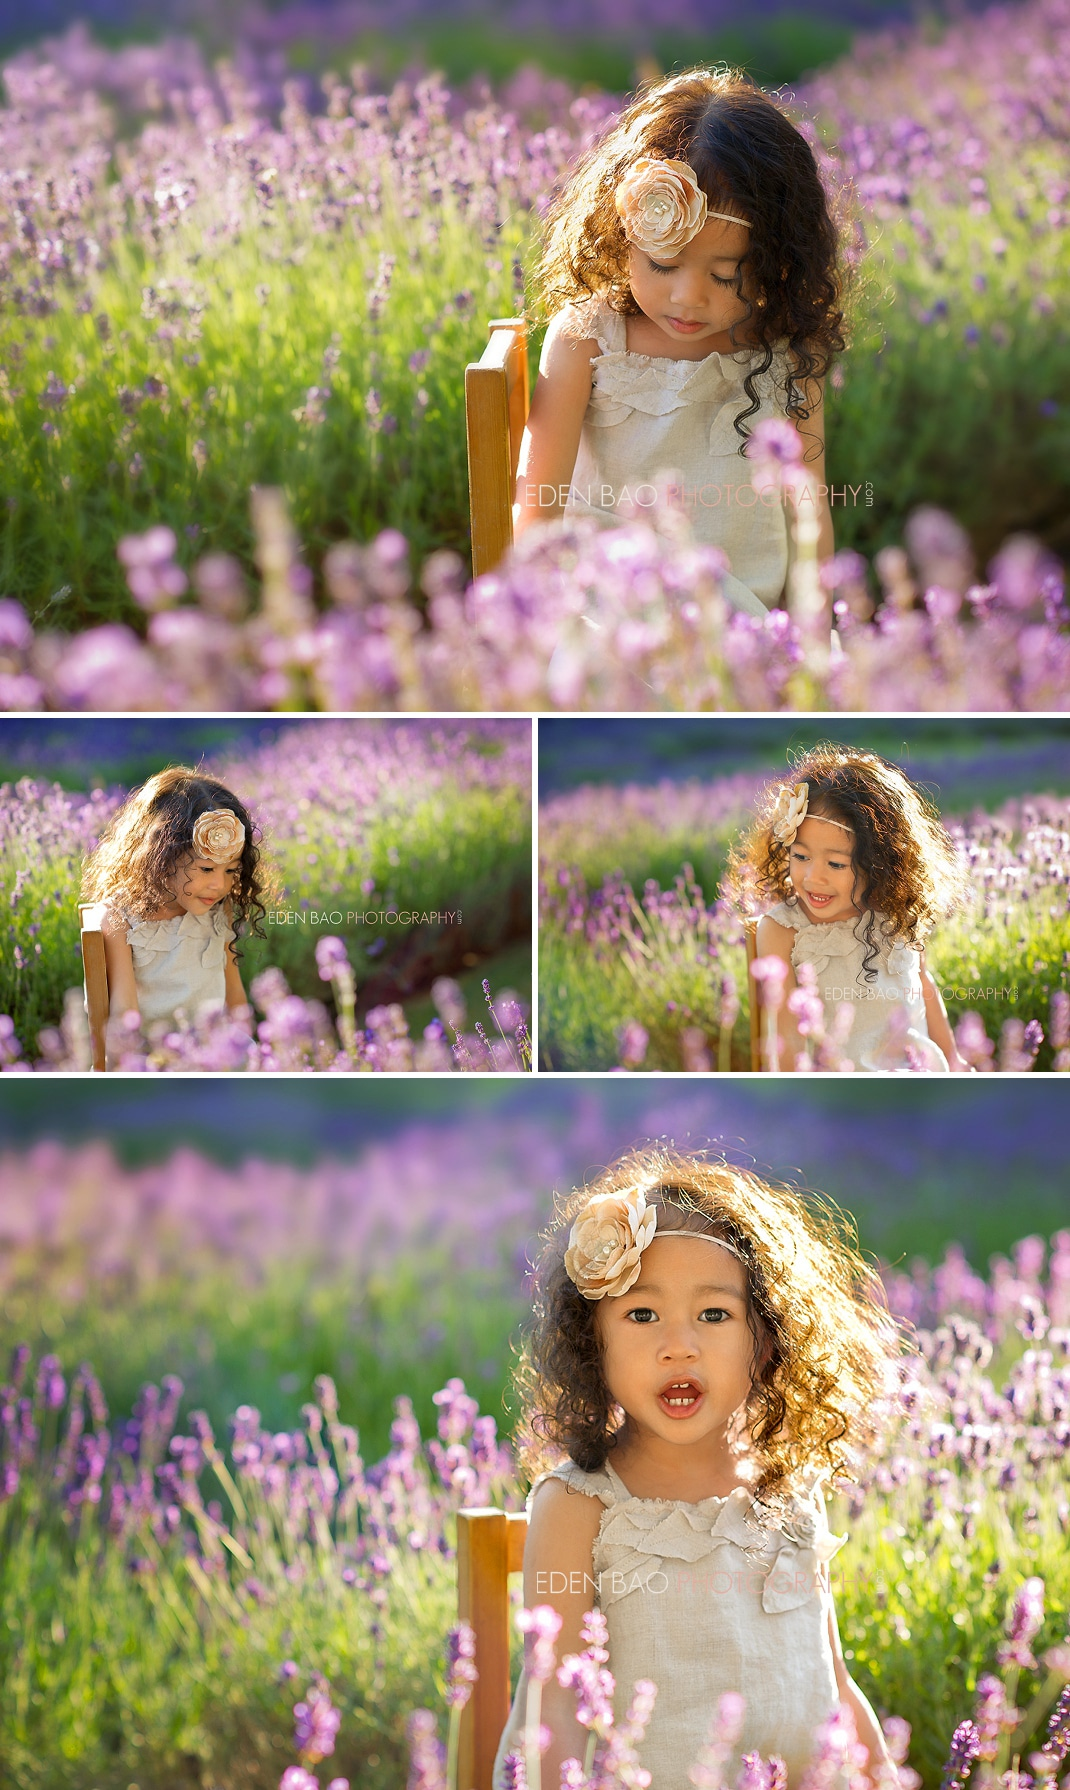 Vancouver BC Child Photographer Eden Bao | Angeline in the Lavender Fields